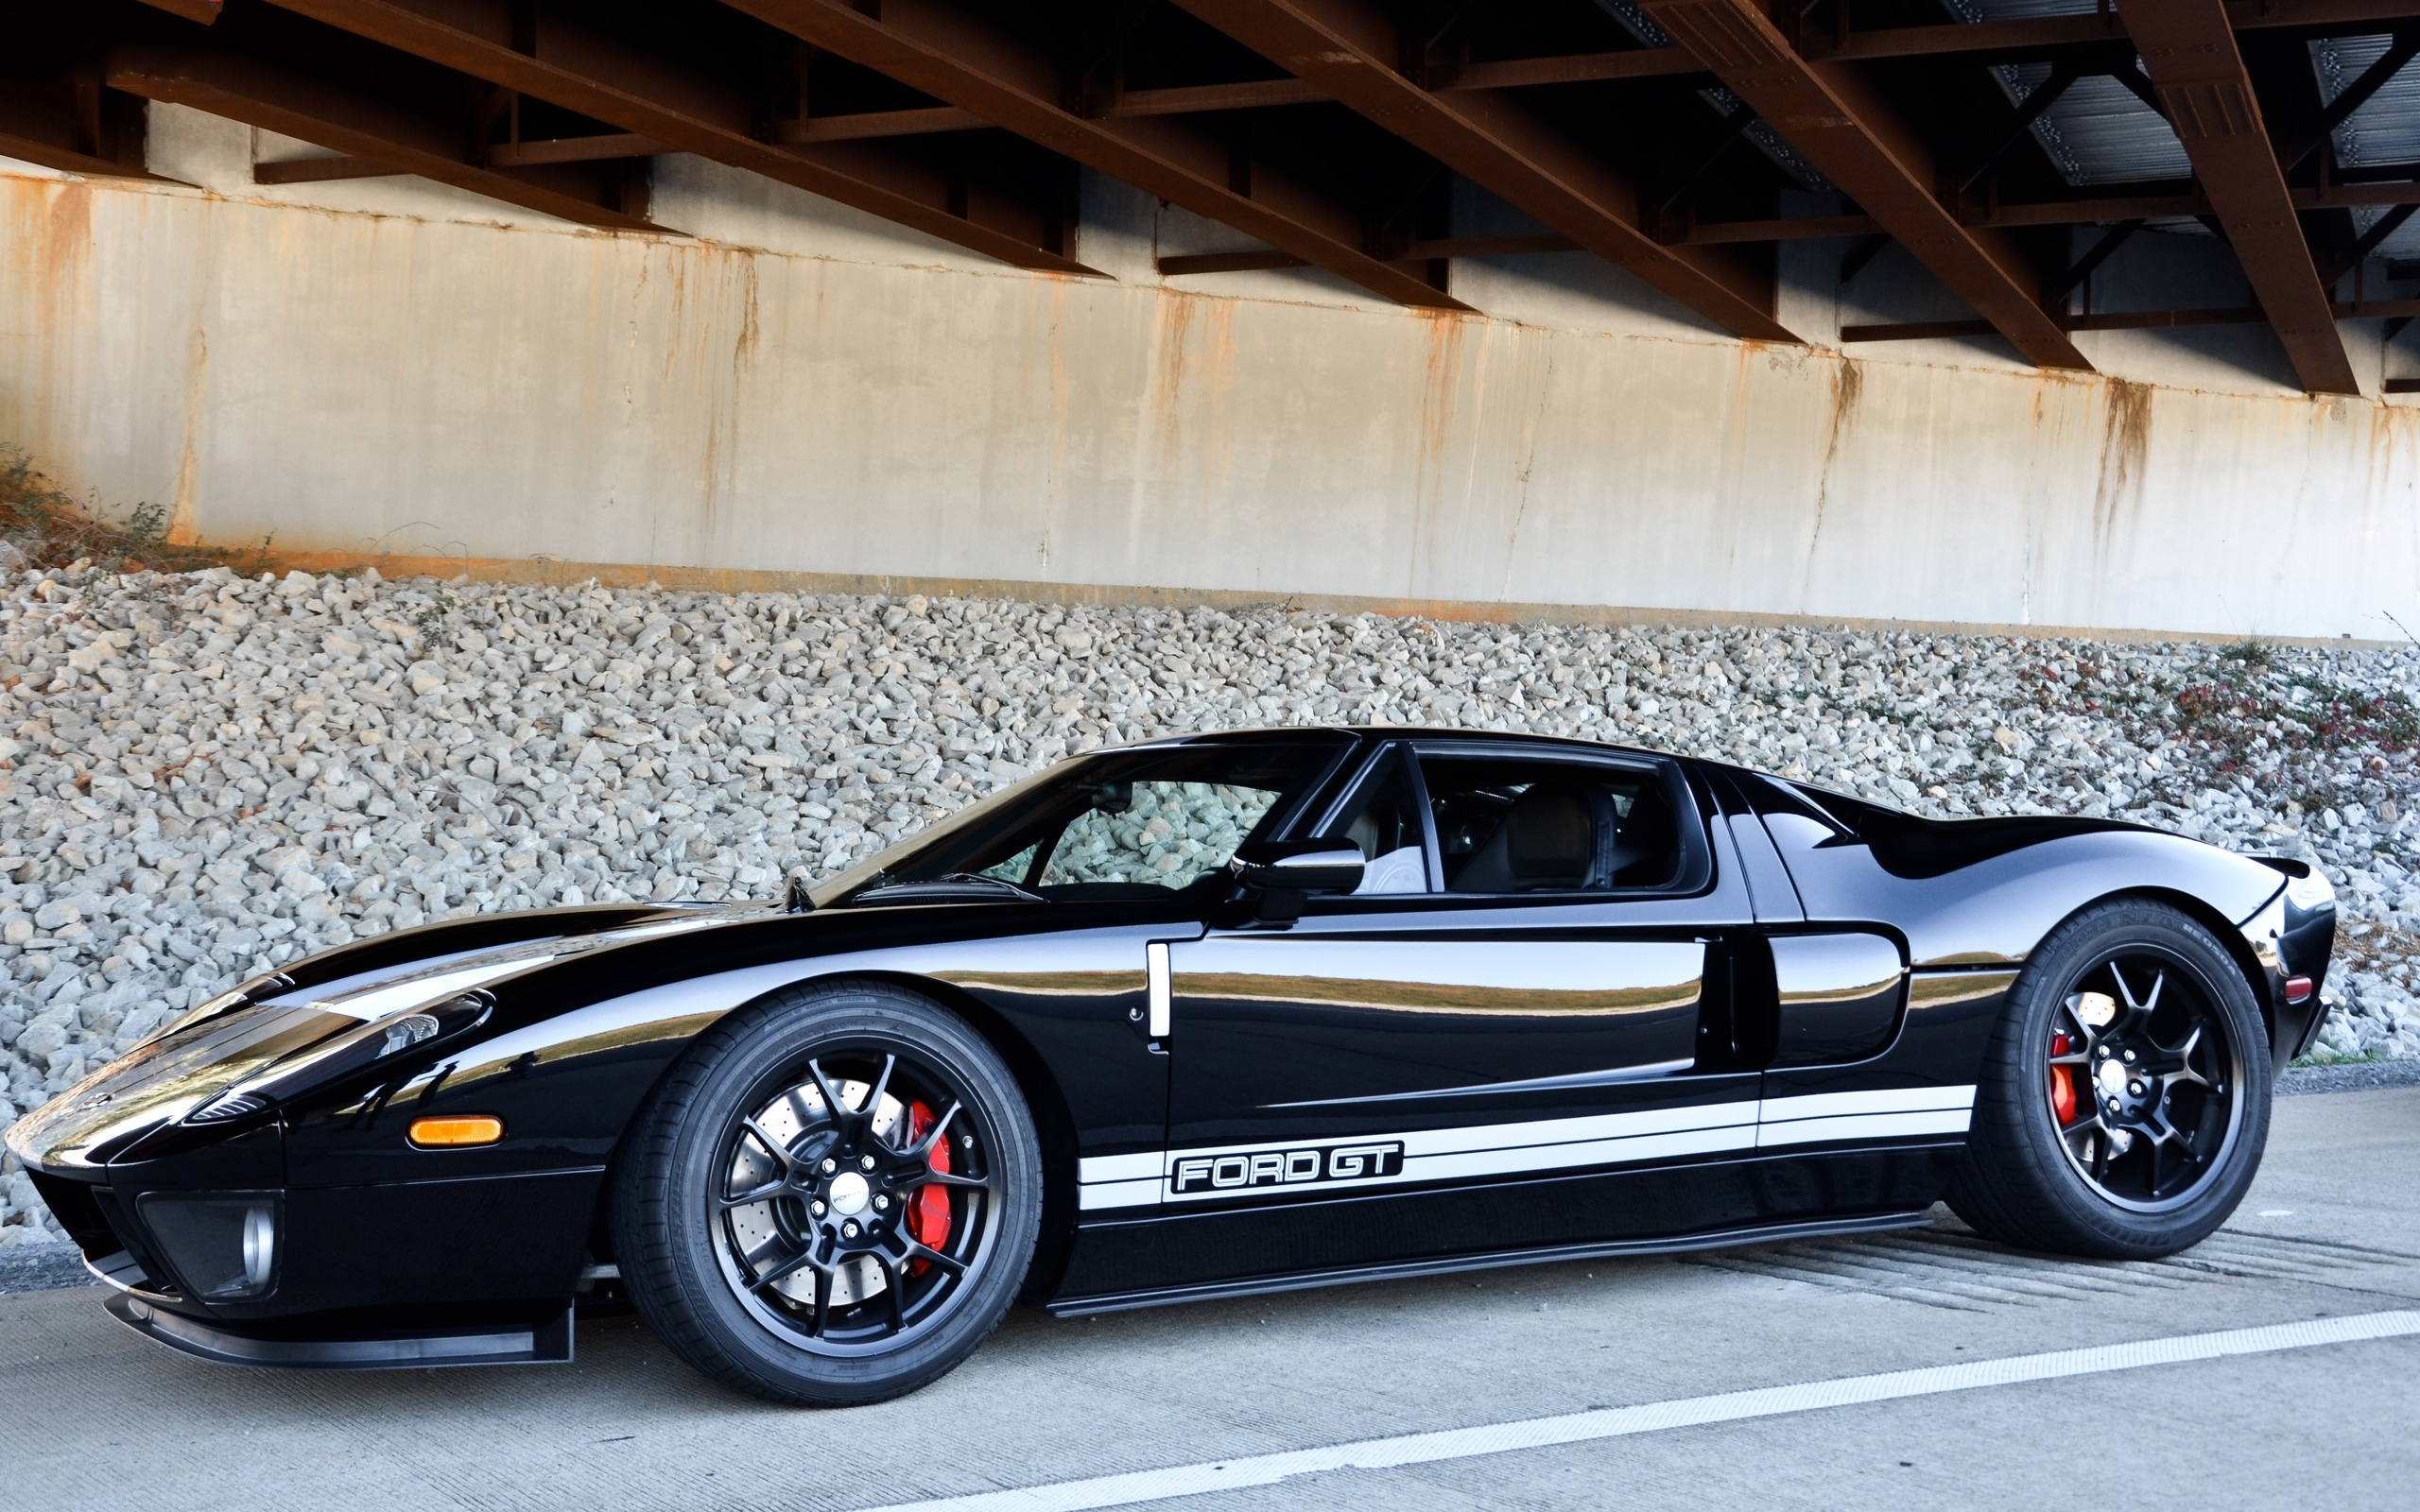 135 ford gt hd wallpapers | background images - wallpaper abyss